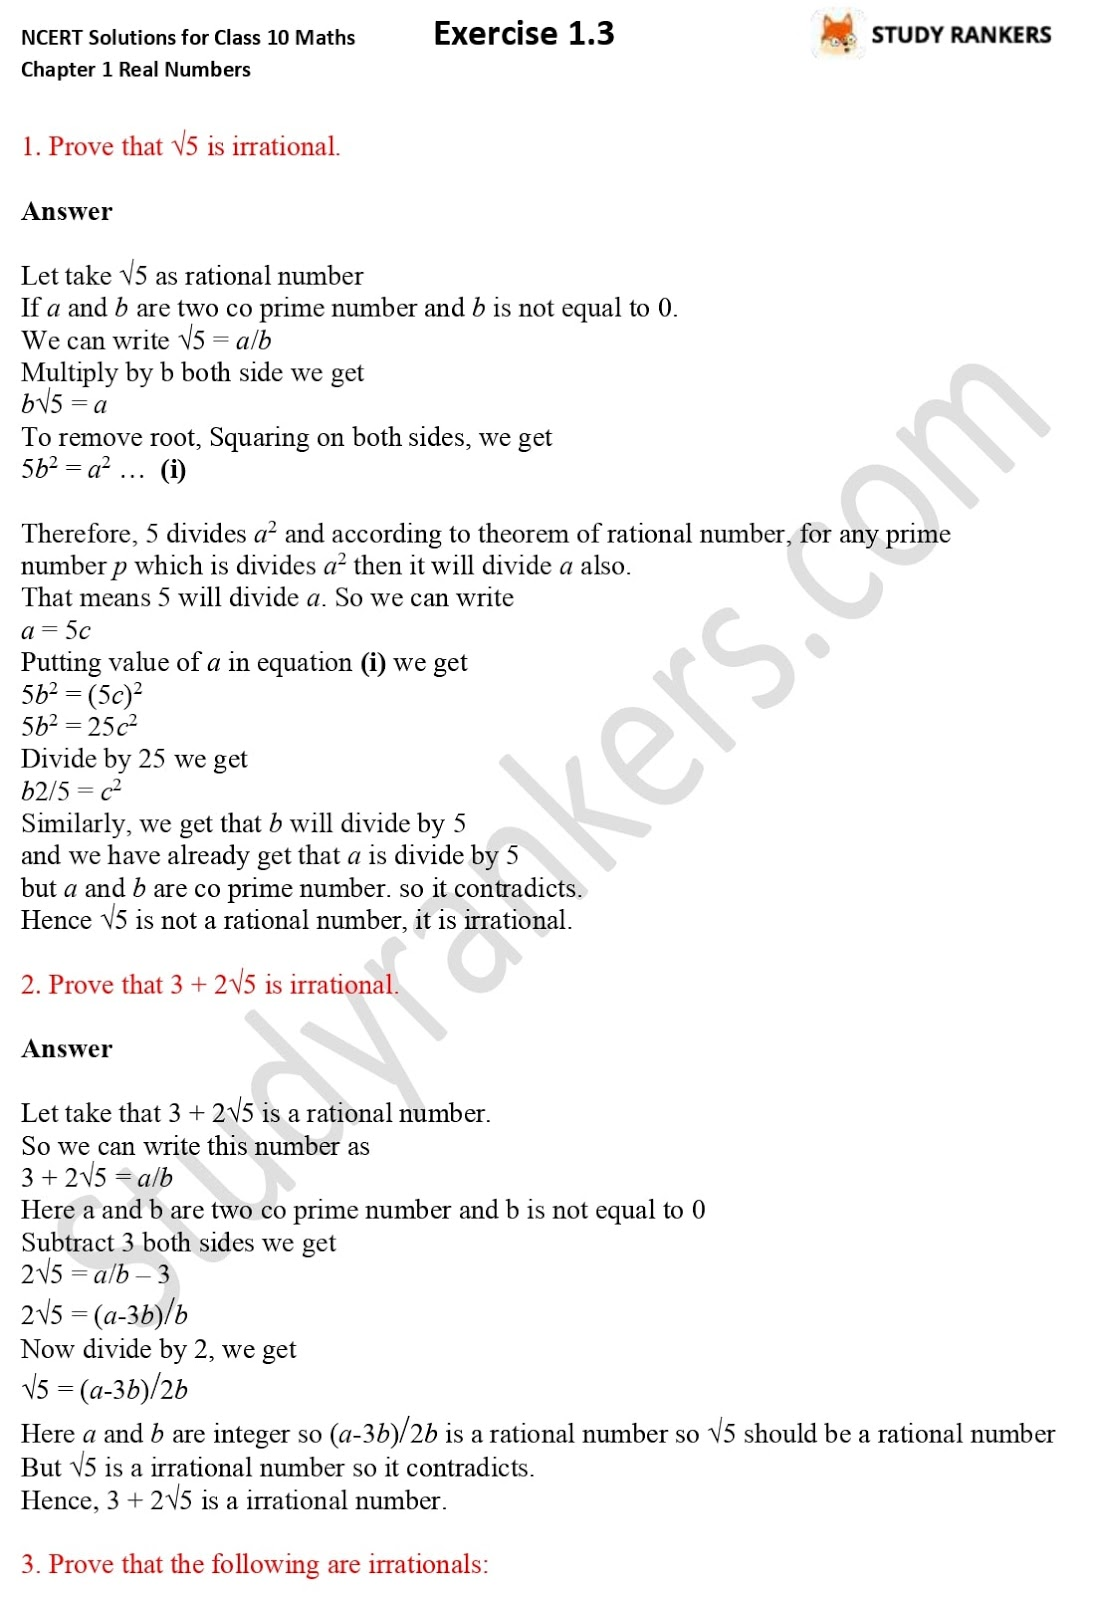 NCERT Solutions for Class 10 Maths Chapter 1 Real Numbers Exercise 1.3 1